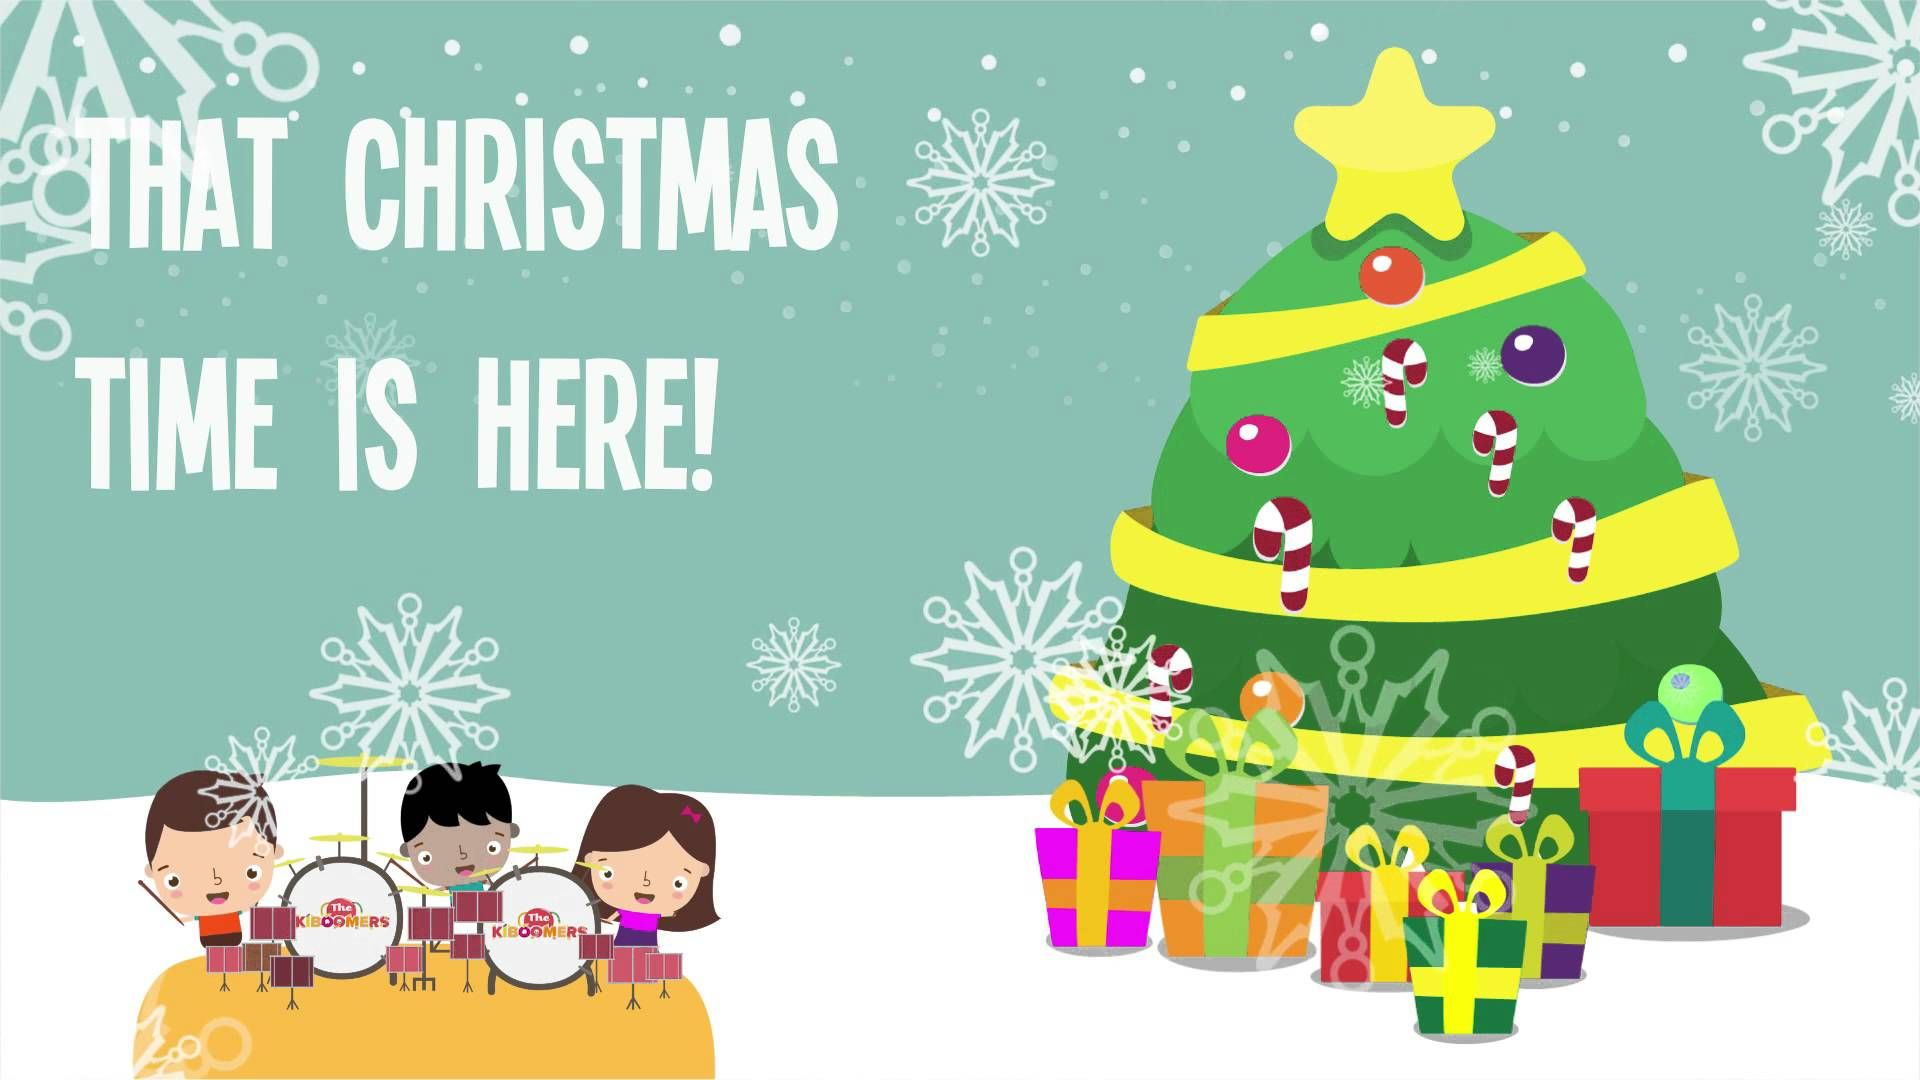 Christmas Time Is Here Christmas Songs For Kids Christmas Songs For Kids Christmas Kindergarten Christmas Songs For Toddlers